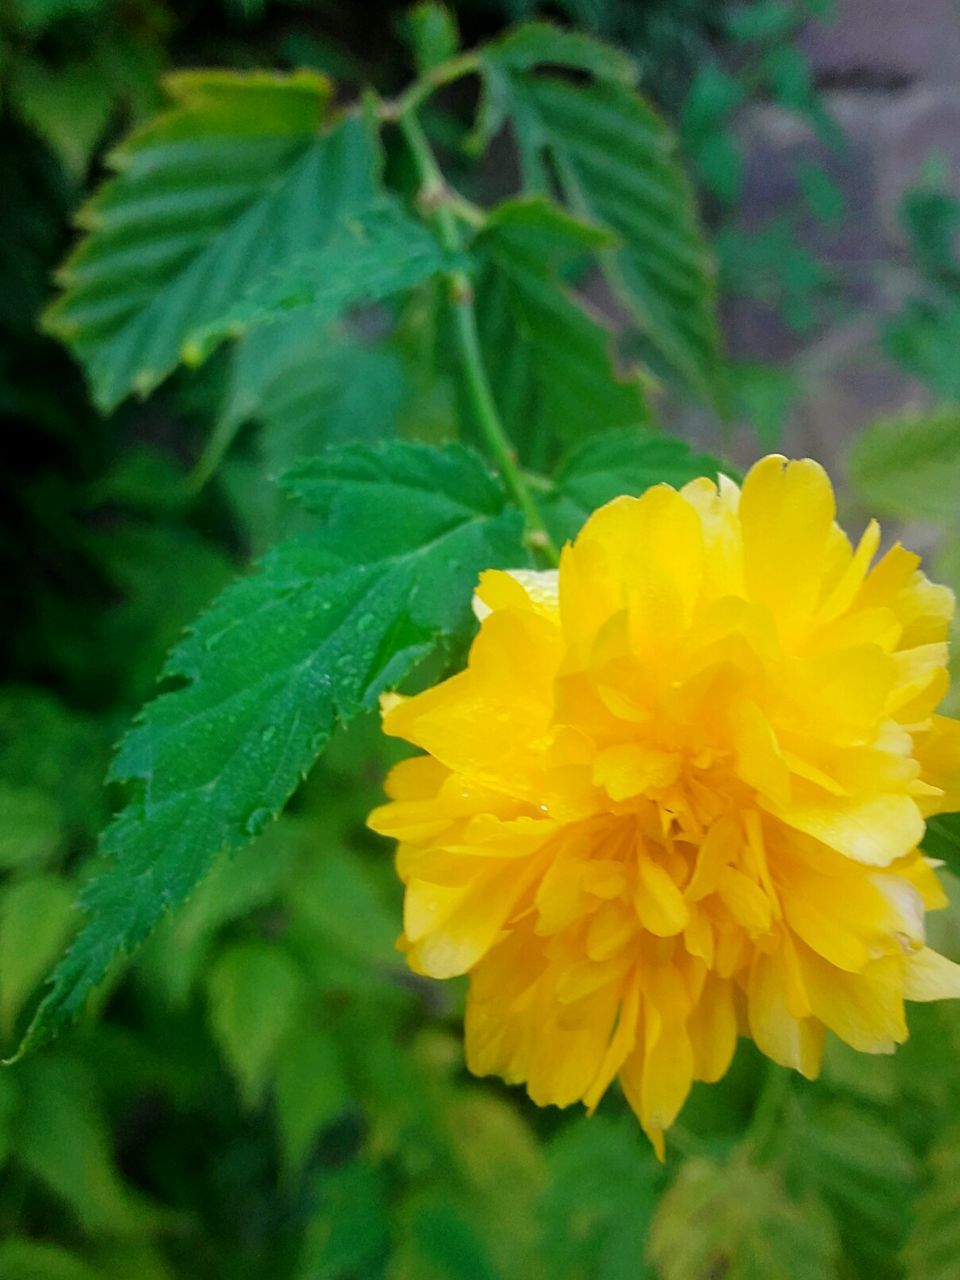 flower, yellow, fragility, petal, freshness, beauty in nature, growth, plant, flower head, nature, leaf, green color, close-up, no people, outdoors, blooming, day, springtime